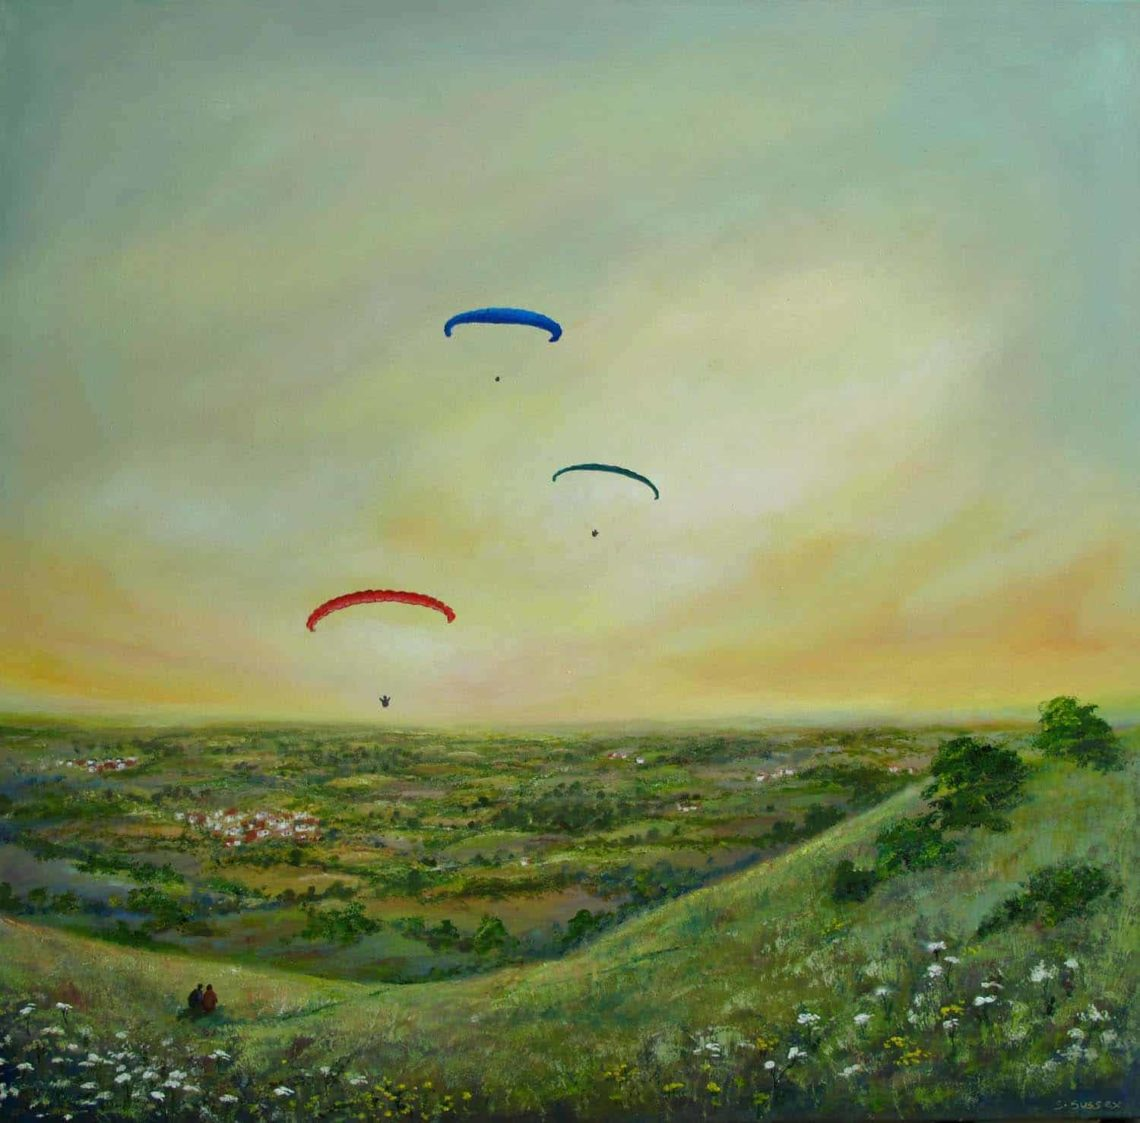 Paragliders-at-Devils-Dyke-100x100cm-south-downs-serena-sussex 1